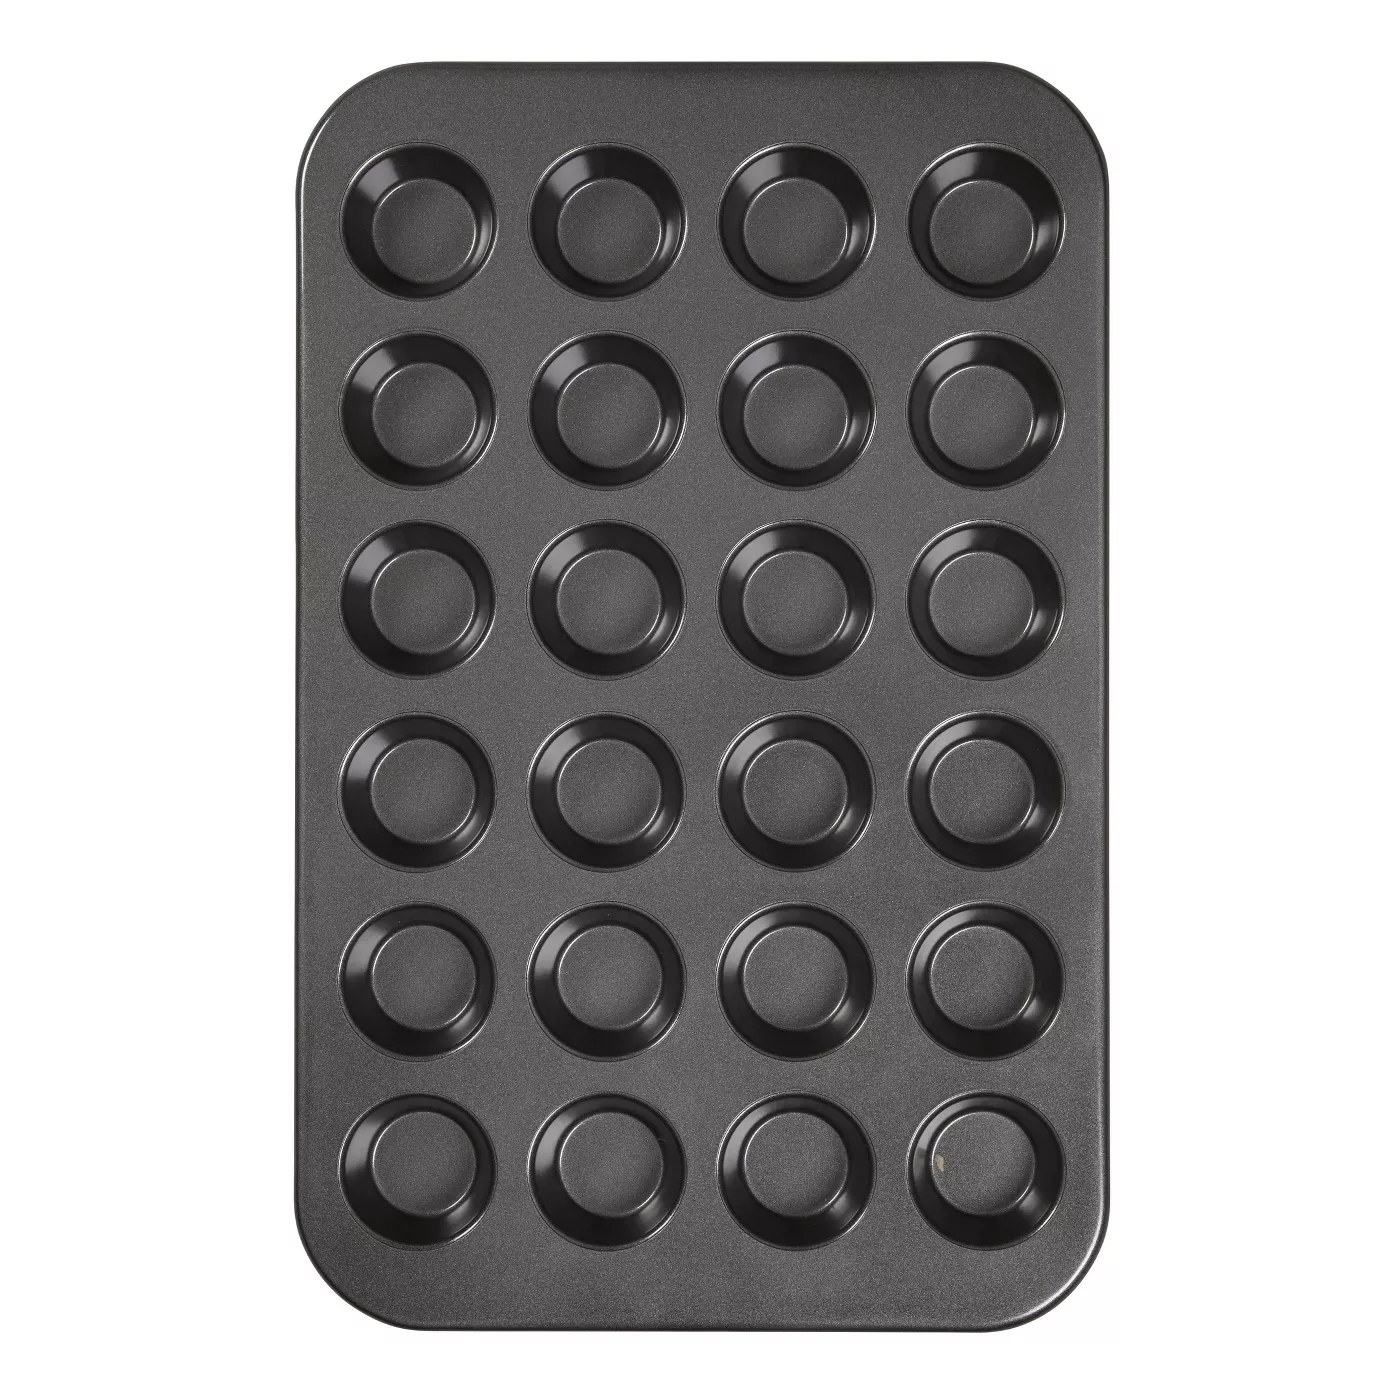 The nonstick muffin pan